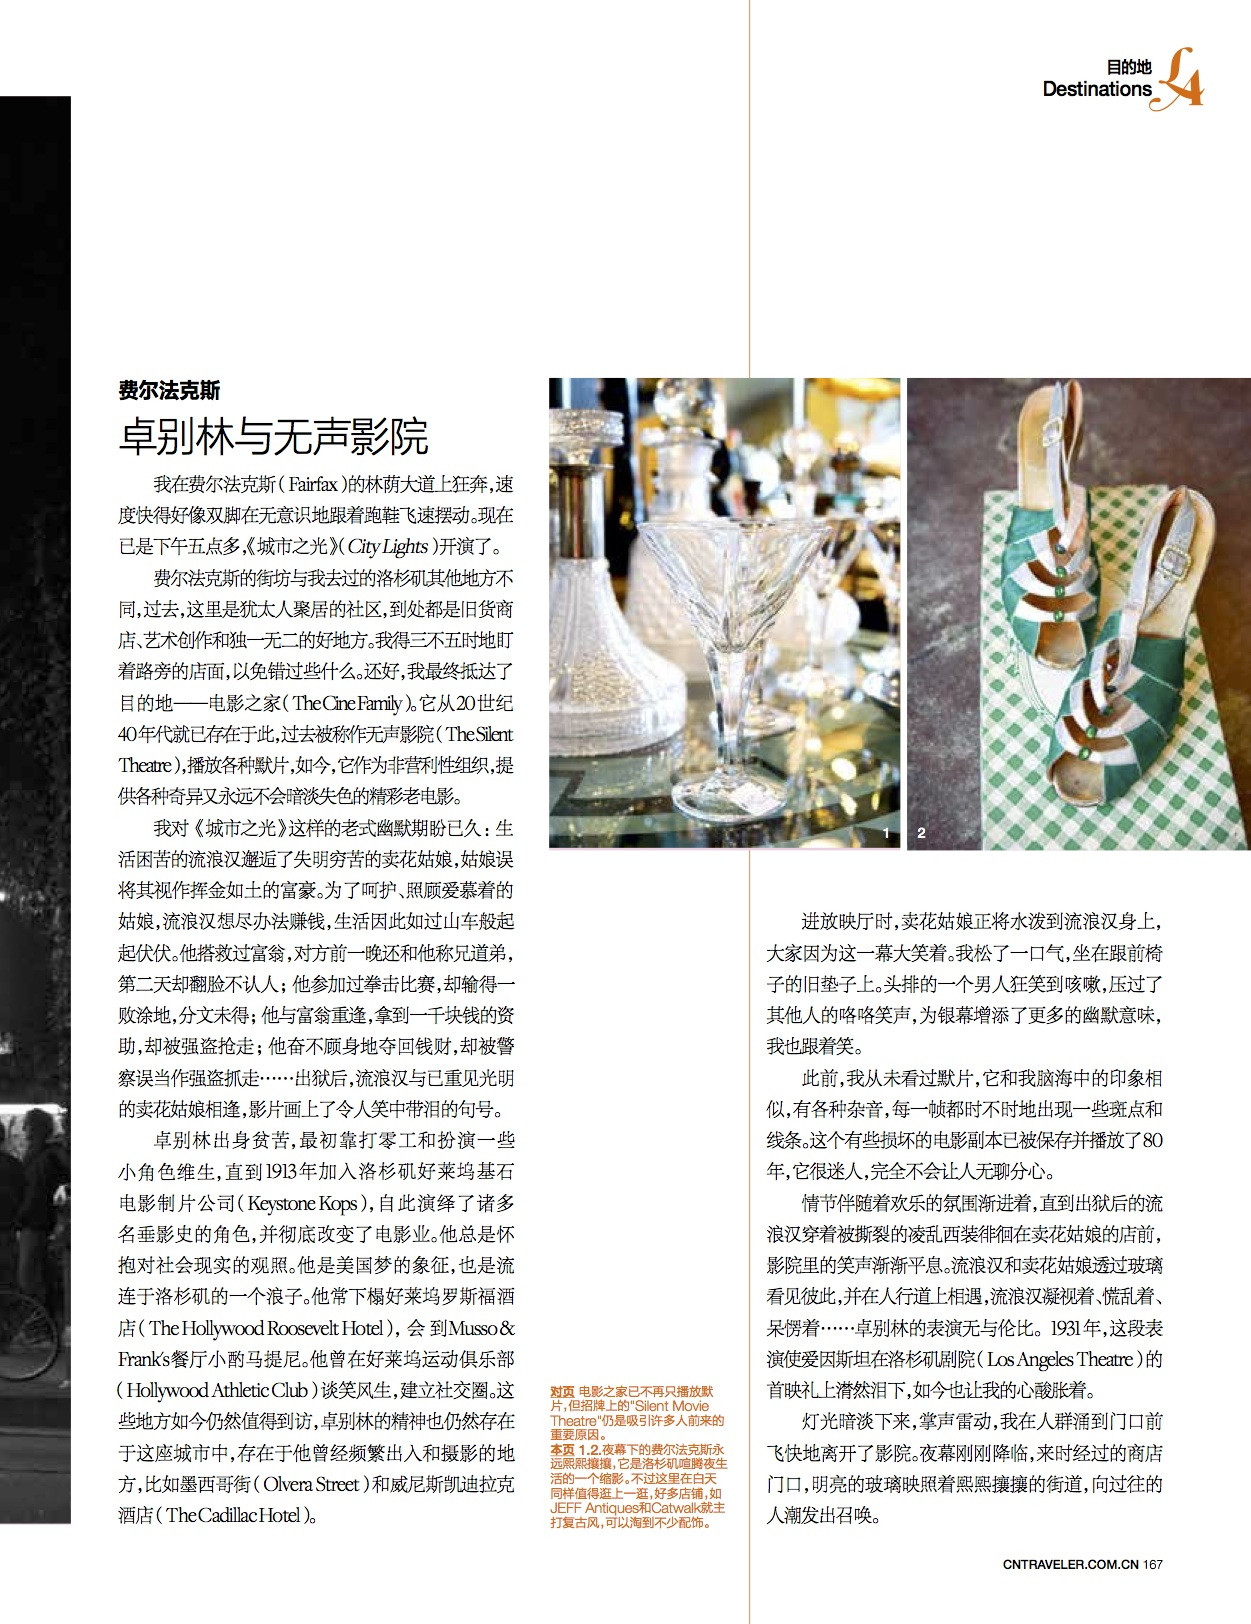 Los Angeles-CNT China May issue-2014-5